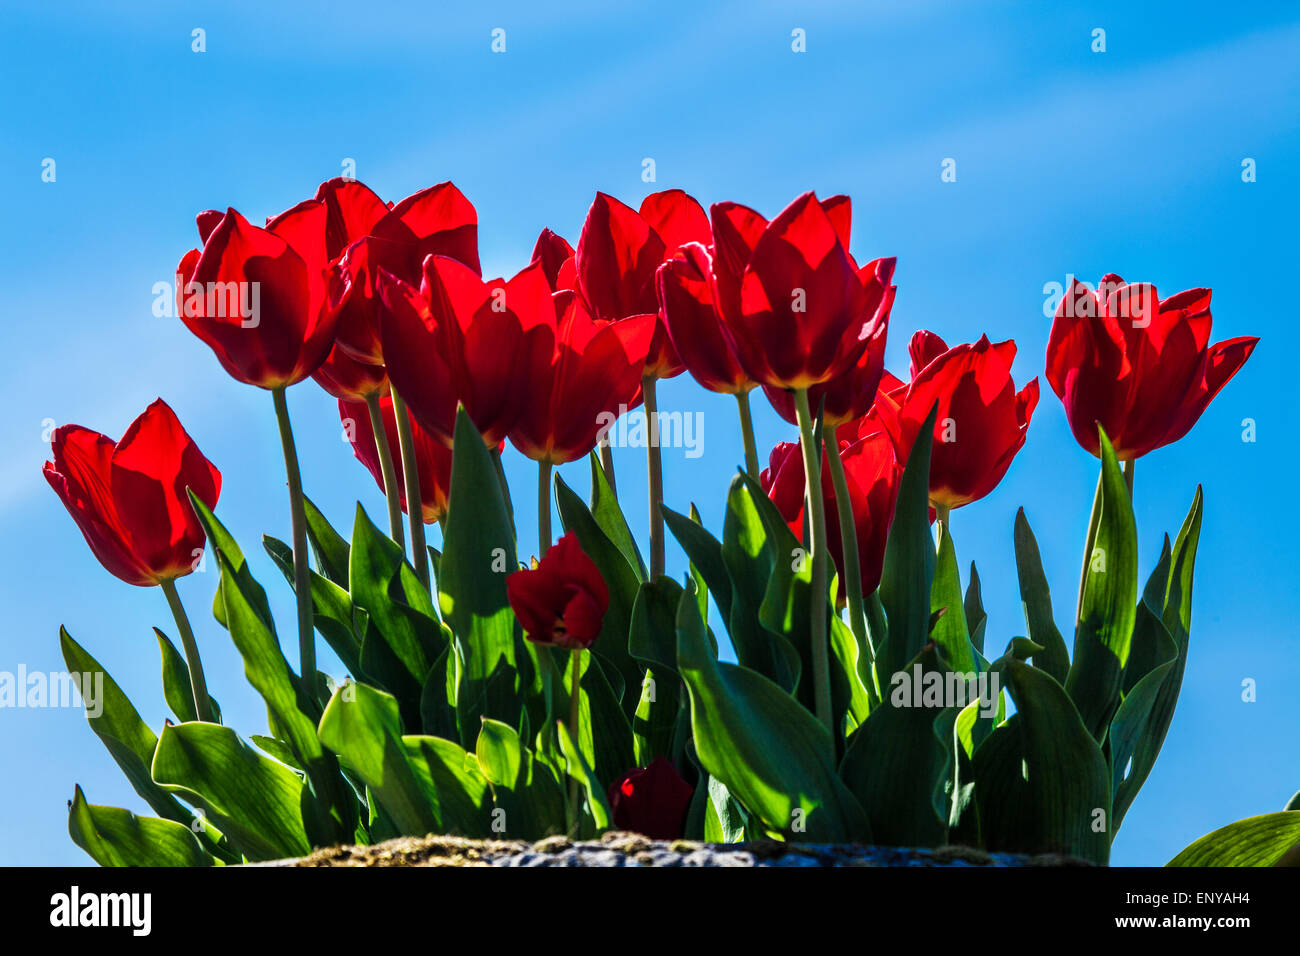 Red tulips growing in a container against a blue sky in the private walled garden at Bowood House in Wiltshire. - Stock Image